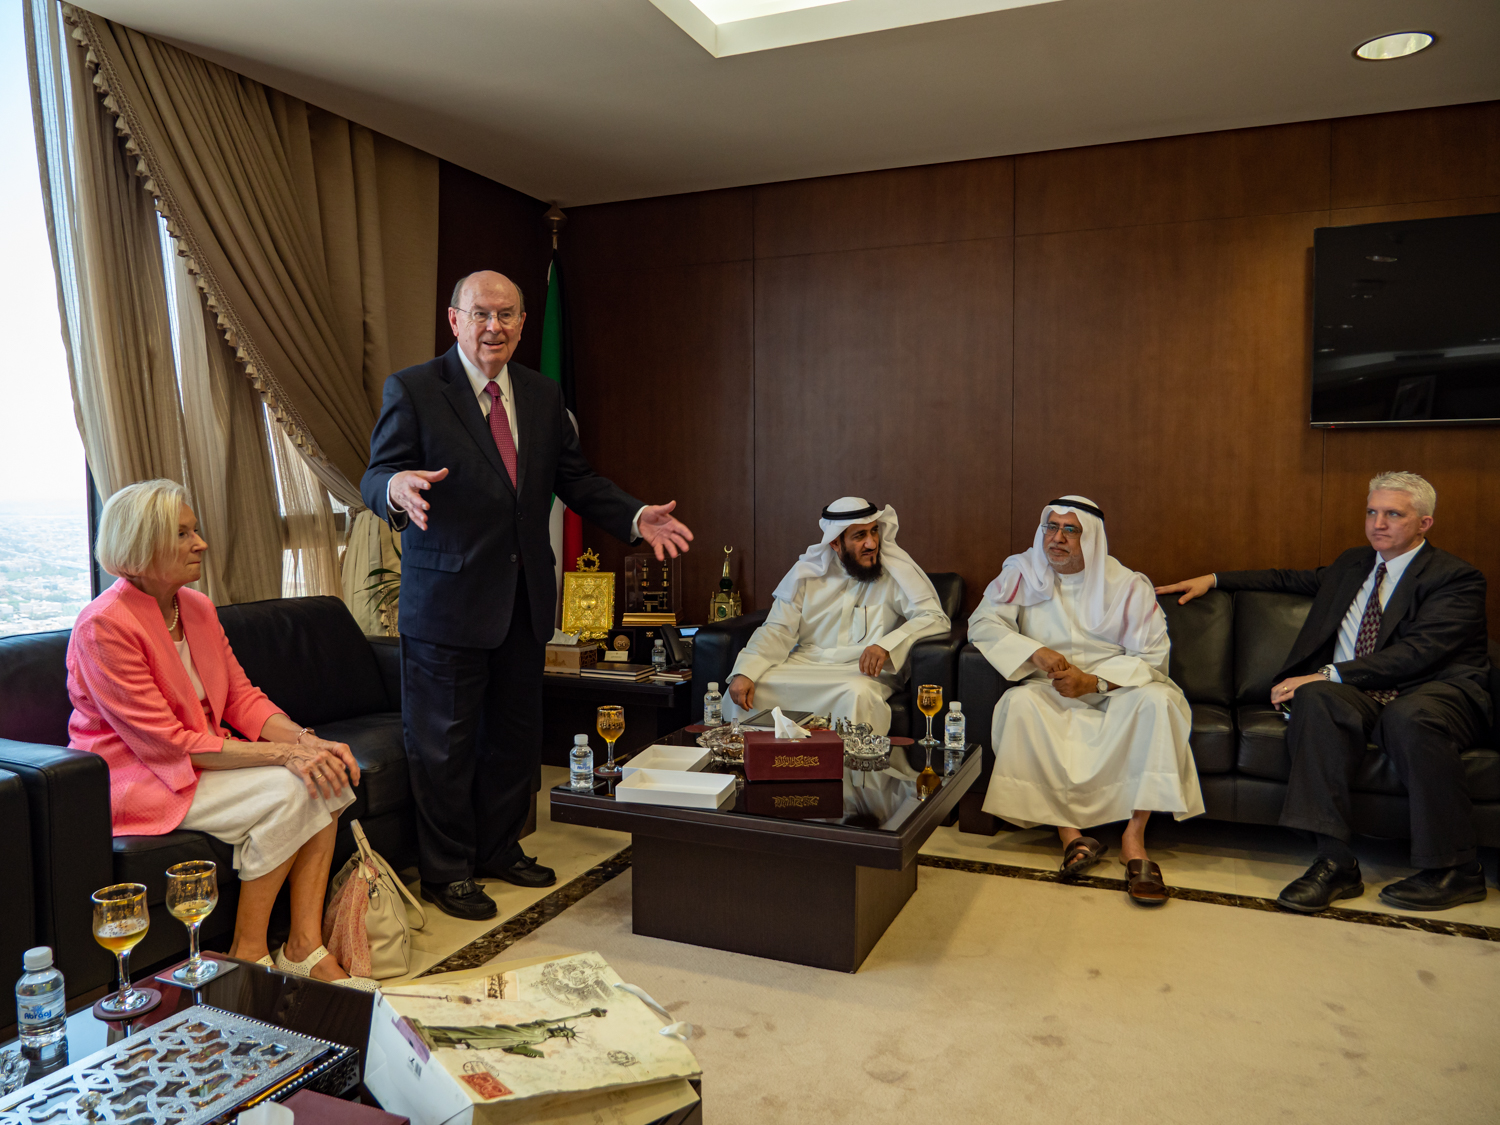 Elder Quentin L. Cook speaks in a meeting with Mr. Fareed Emadi, secretary general of the Supreme Commission for the Promotion of Moderation in the Ministry of Awqaf, middle, and others in Kuwait City on June 10, 2019. Sister Mary Cook is at left.